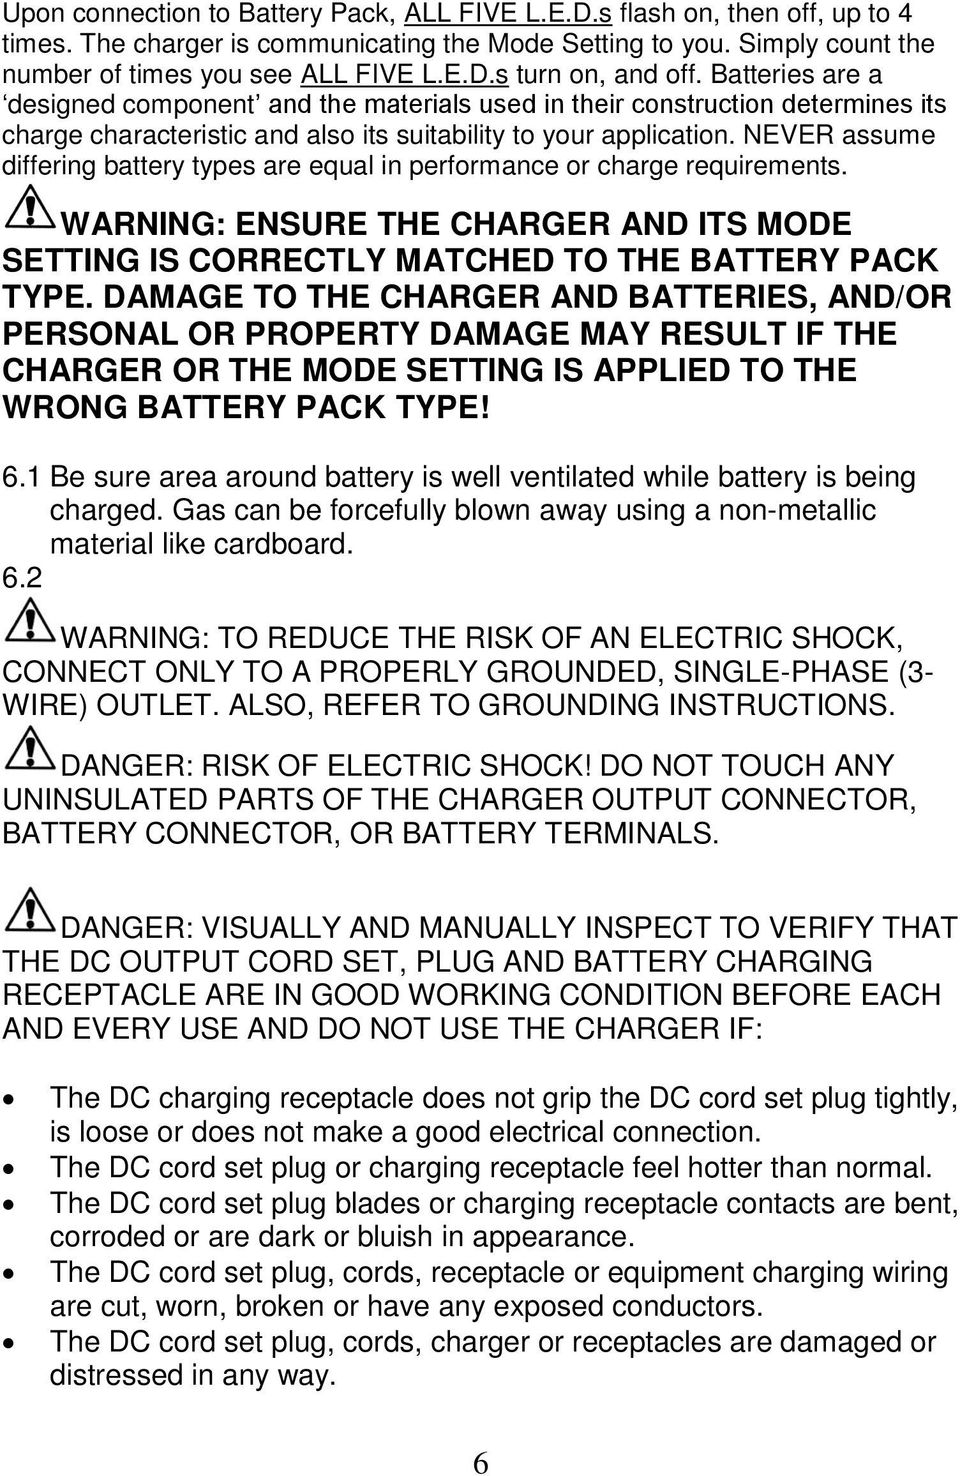 Accusense Charge Series On Off Board Fully Automatic Battery Charger Dpi 48v Wiring Diagram Never Assume Differing Types Are Equal In Performance Or Requirements Warning Ensure